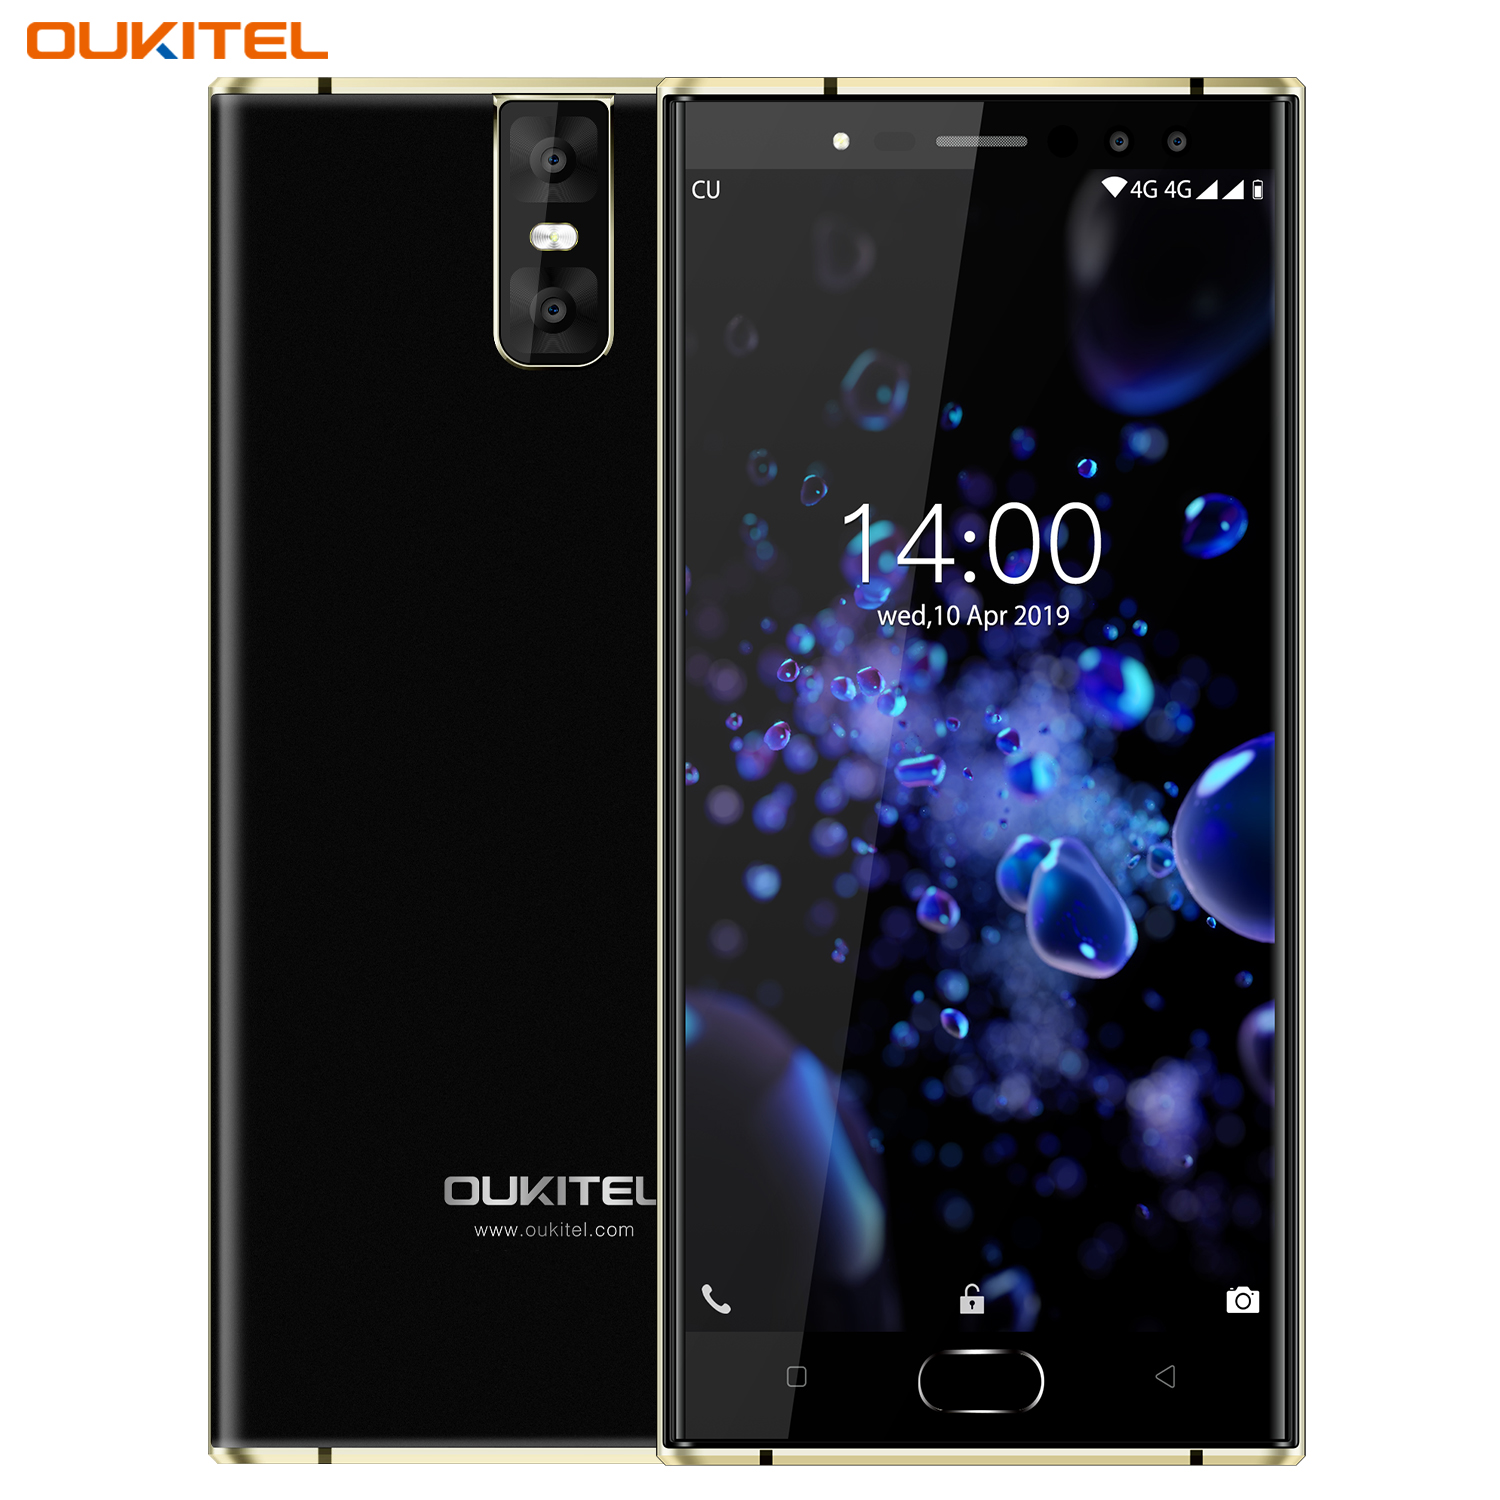 Oukitel K3 Pro Quad Core 5.5 inch 8000mAh Battery 5MP+13MP Camera 1440x720 Resolution 32GB+4GB Mobile Phone Smartphone Black